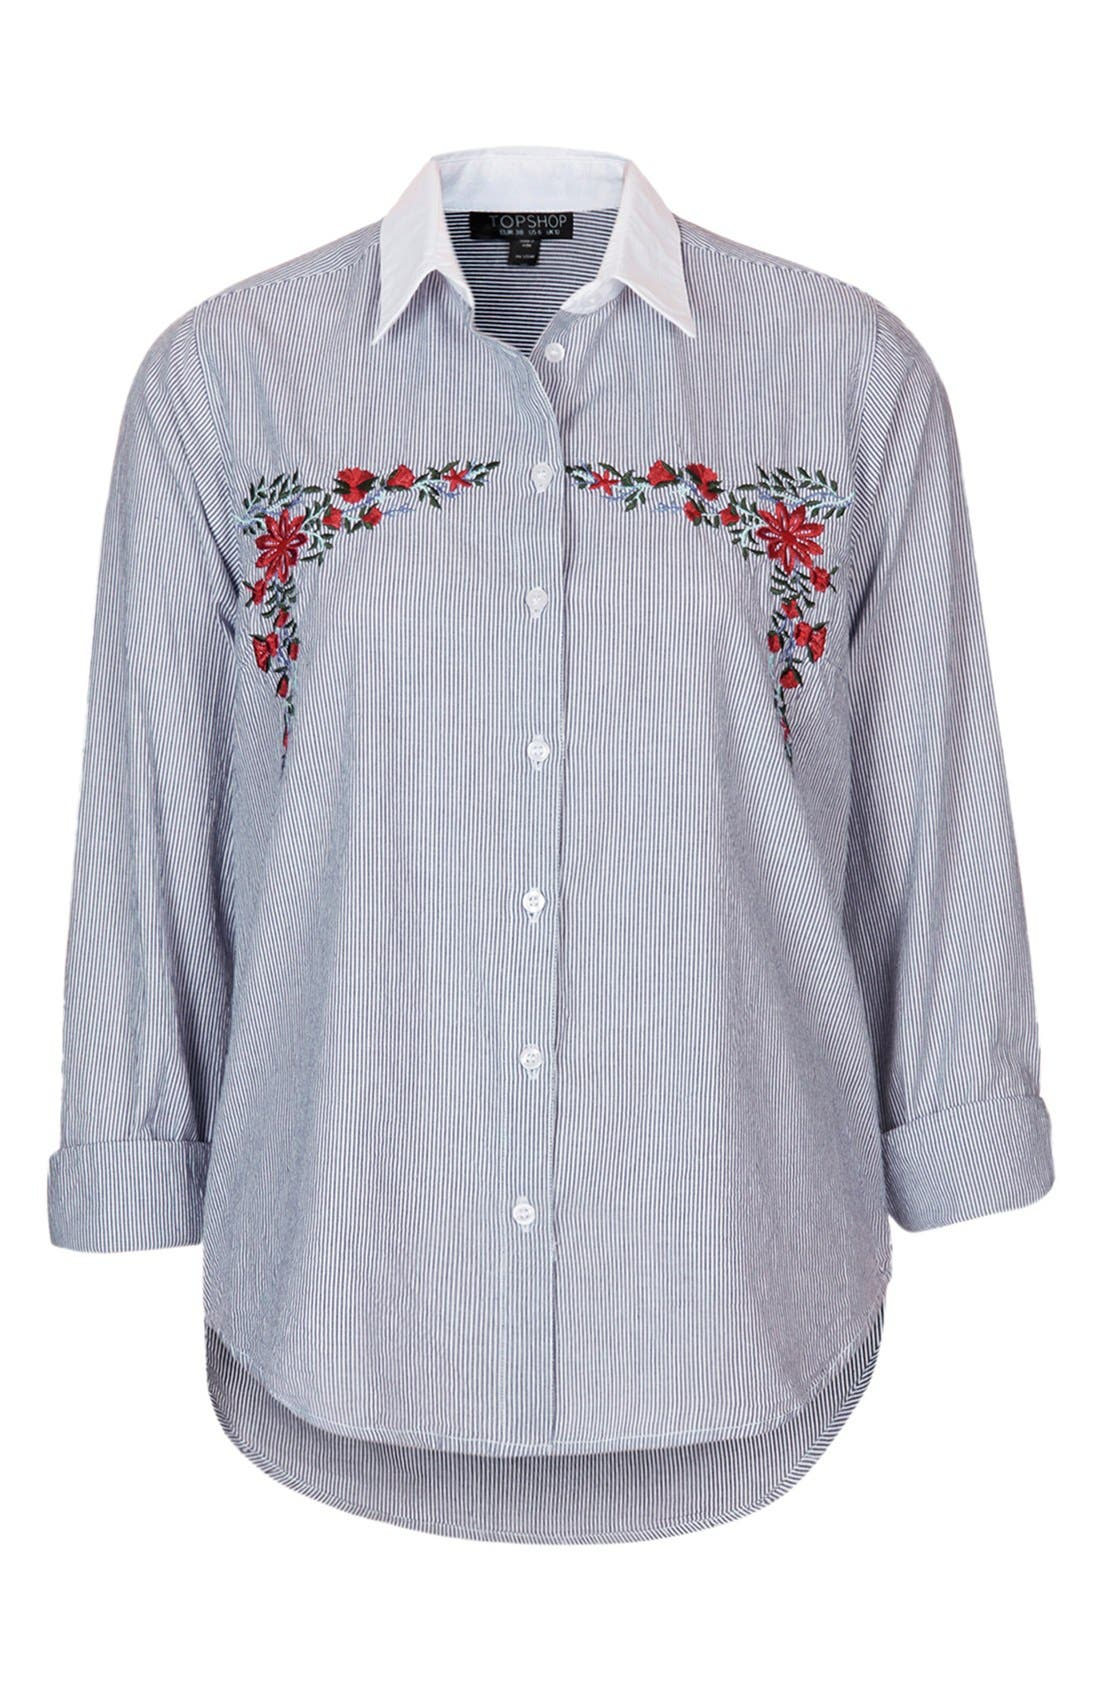 Alternate Image 3  - Topshop Embroidered Cotton Shirt